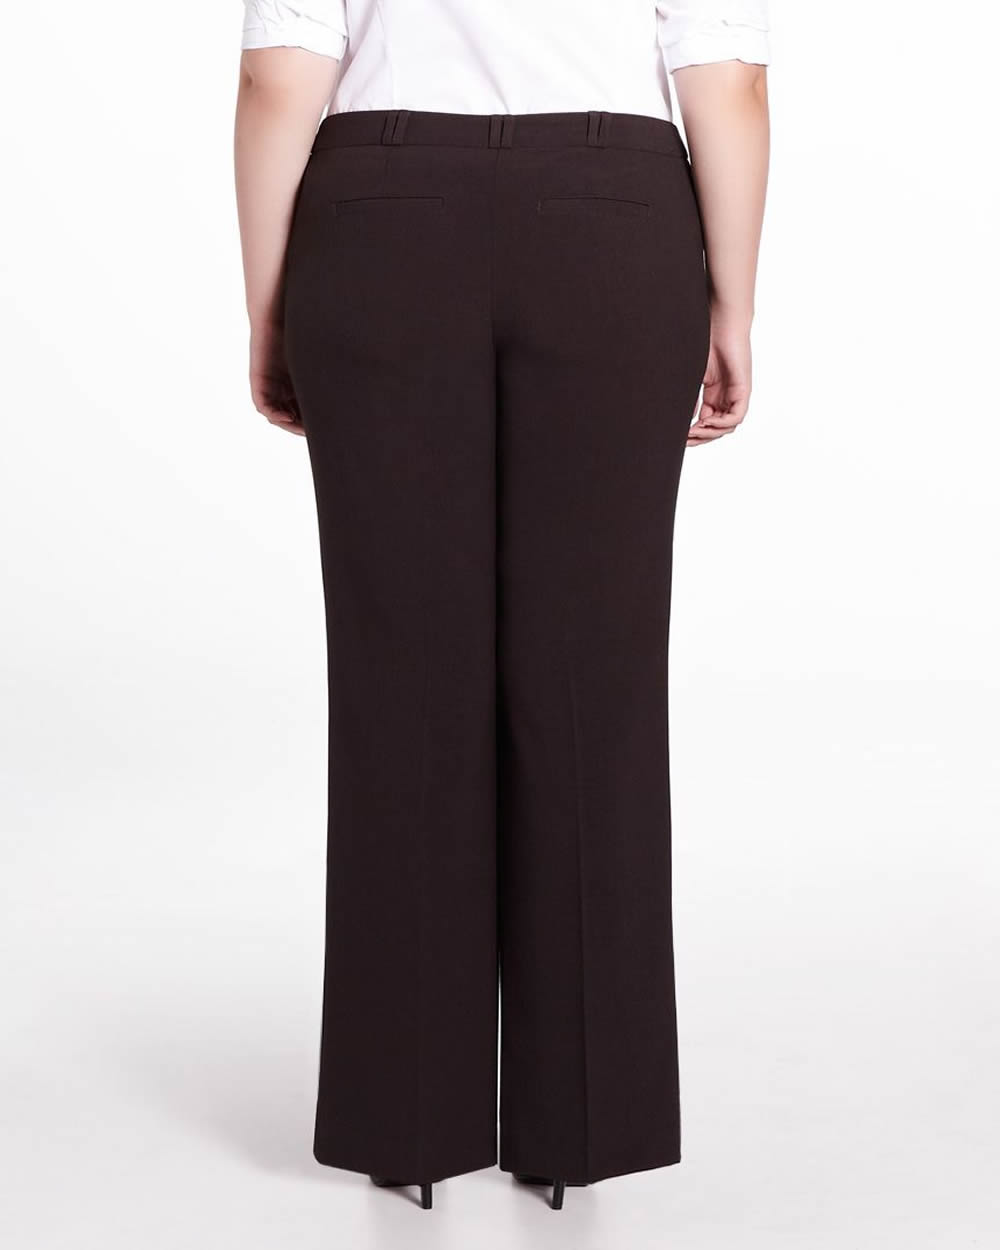 Petite sizes can be found in fashionable plus size styles.